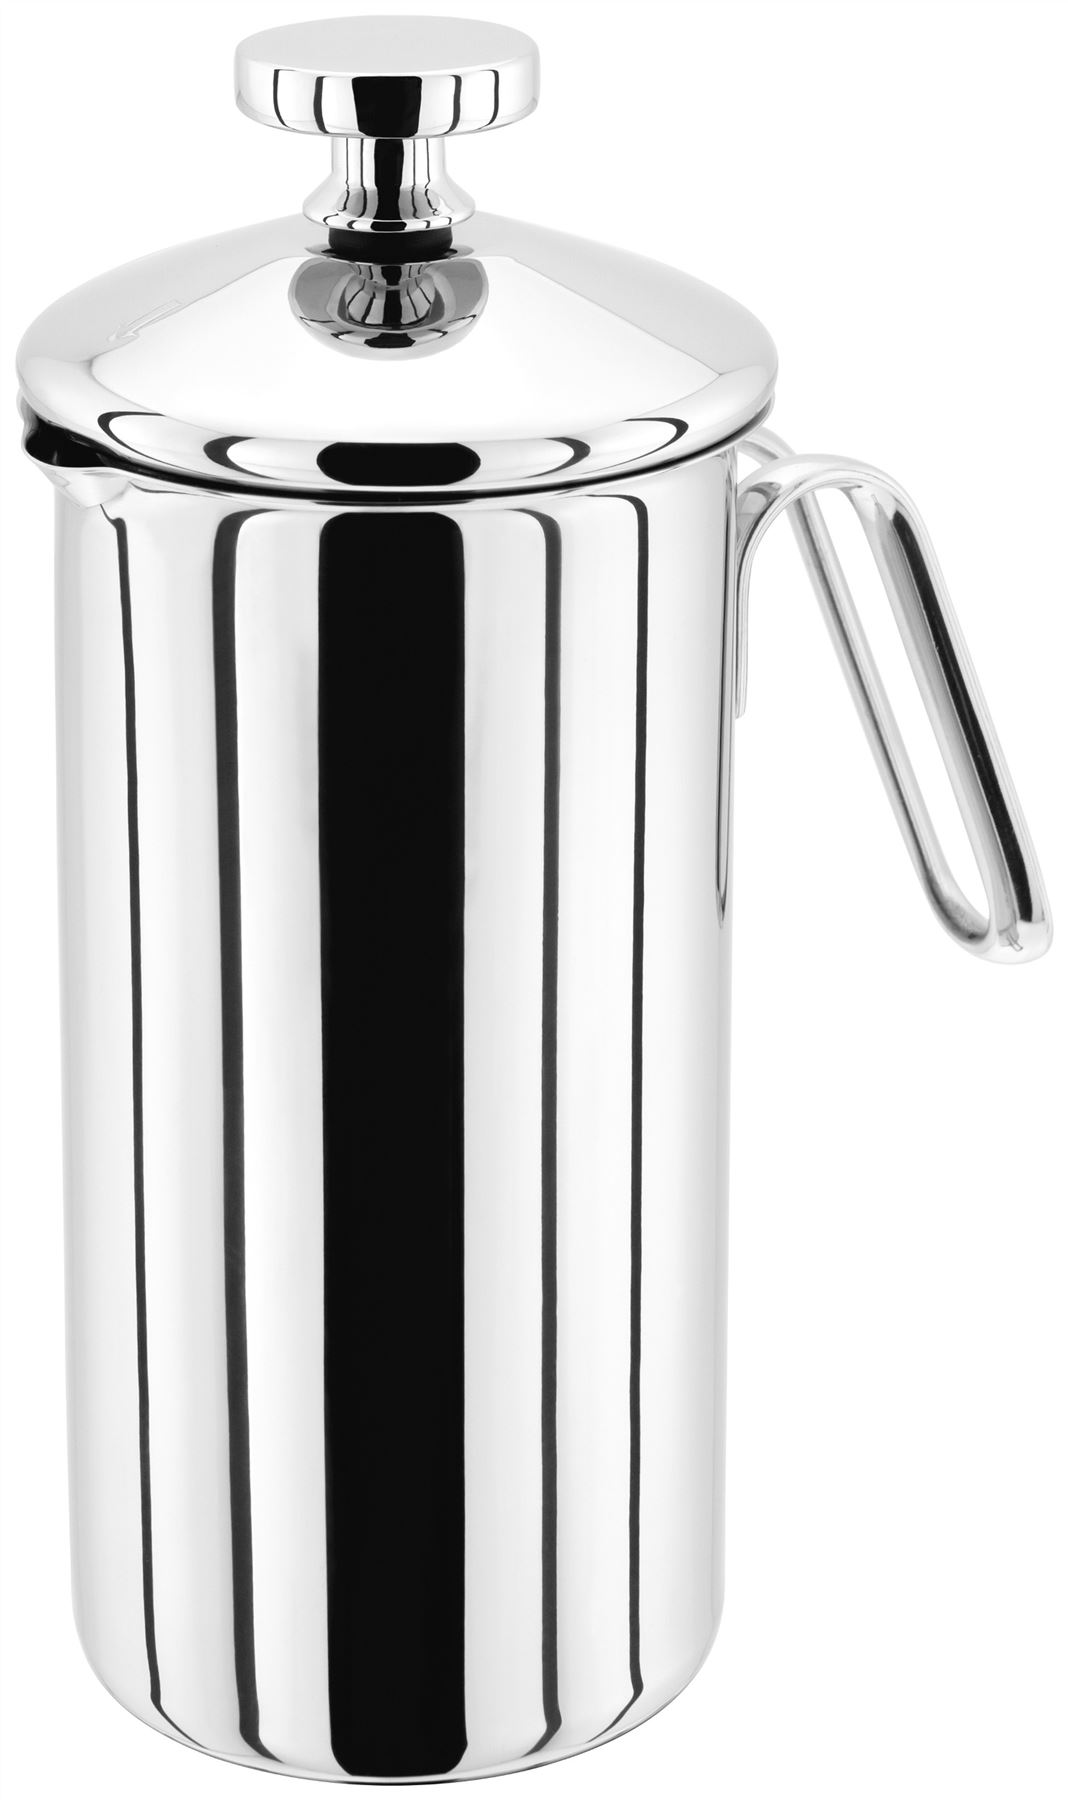 judge stainless steel cafetiere single or double wall coffee maker french press ebay. Black Bedroom Furniture Sets. Home Design Ideas